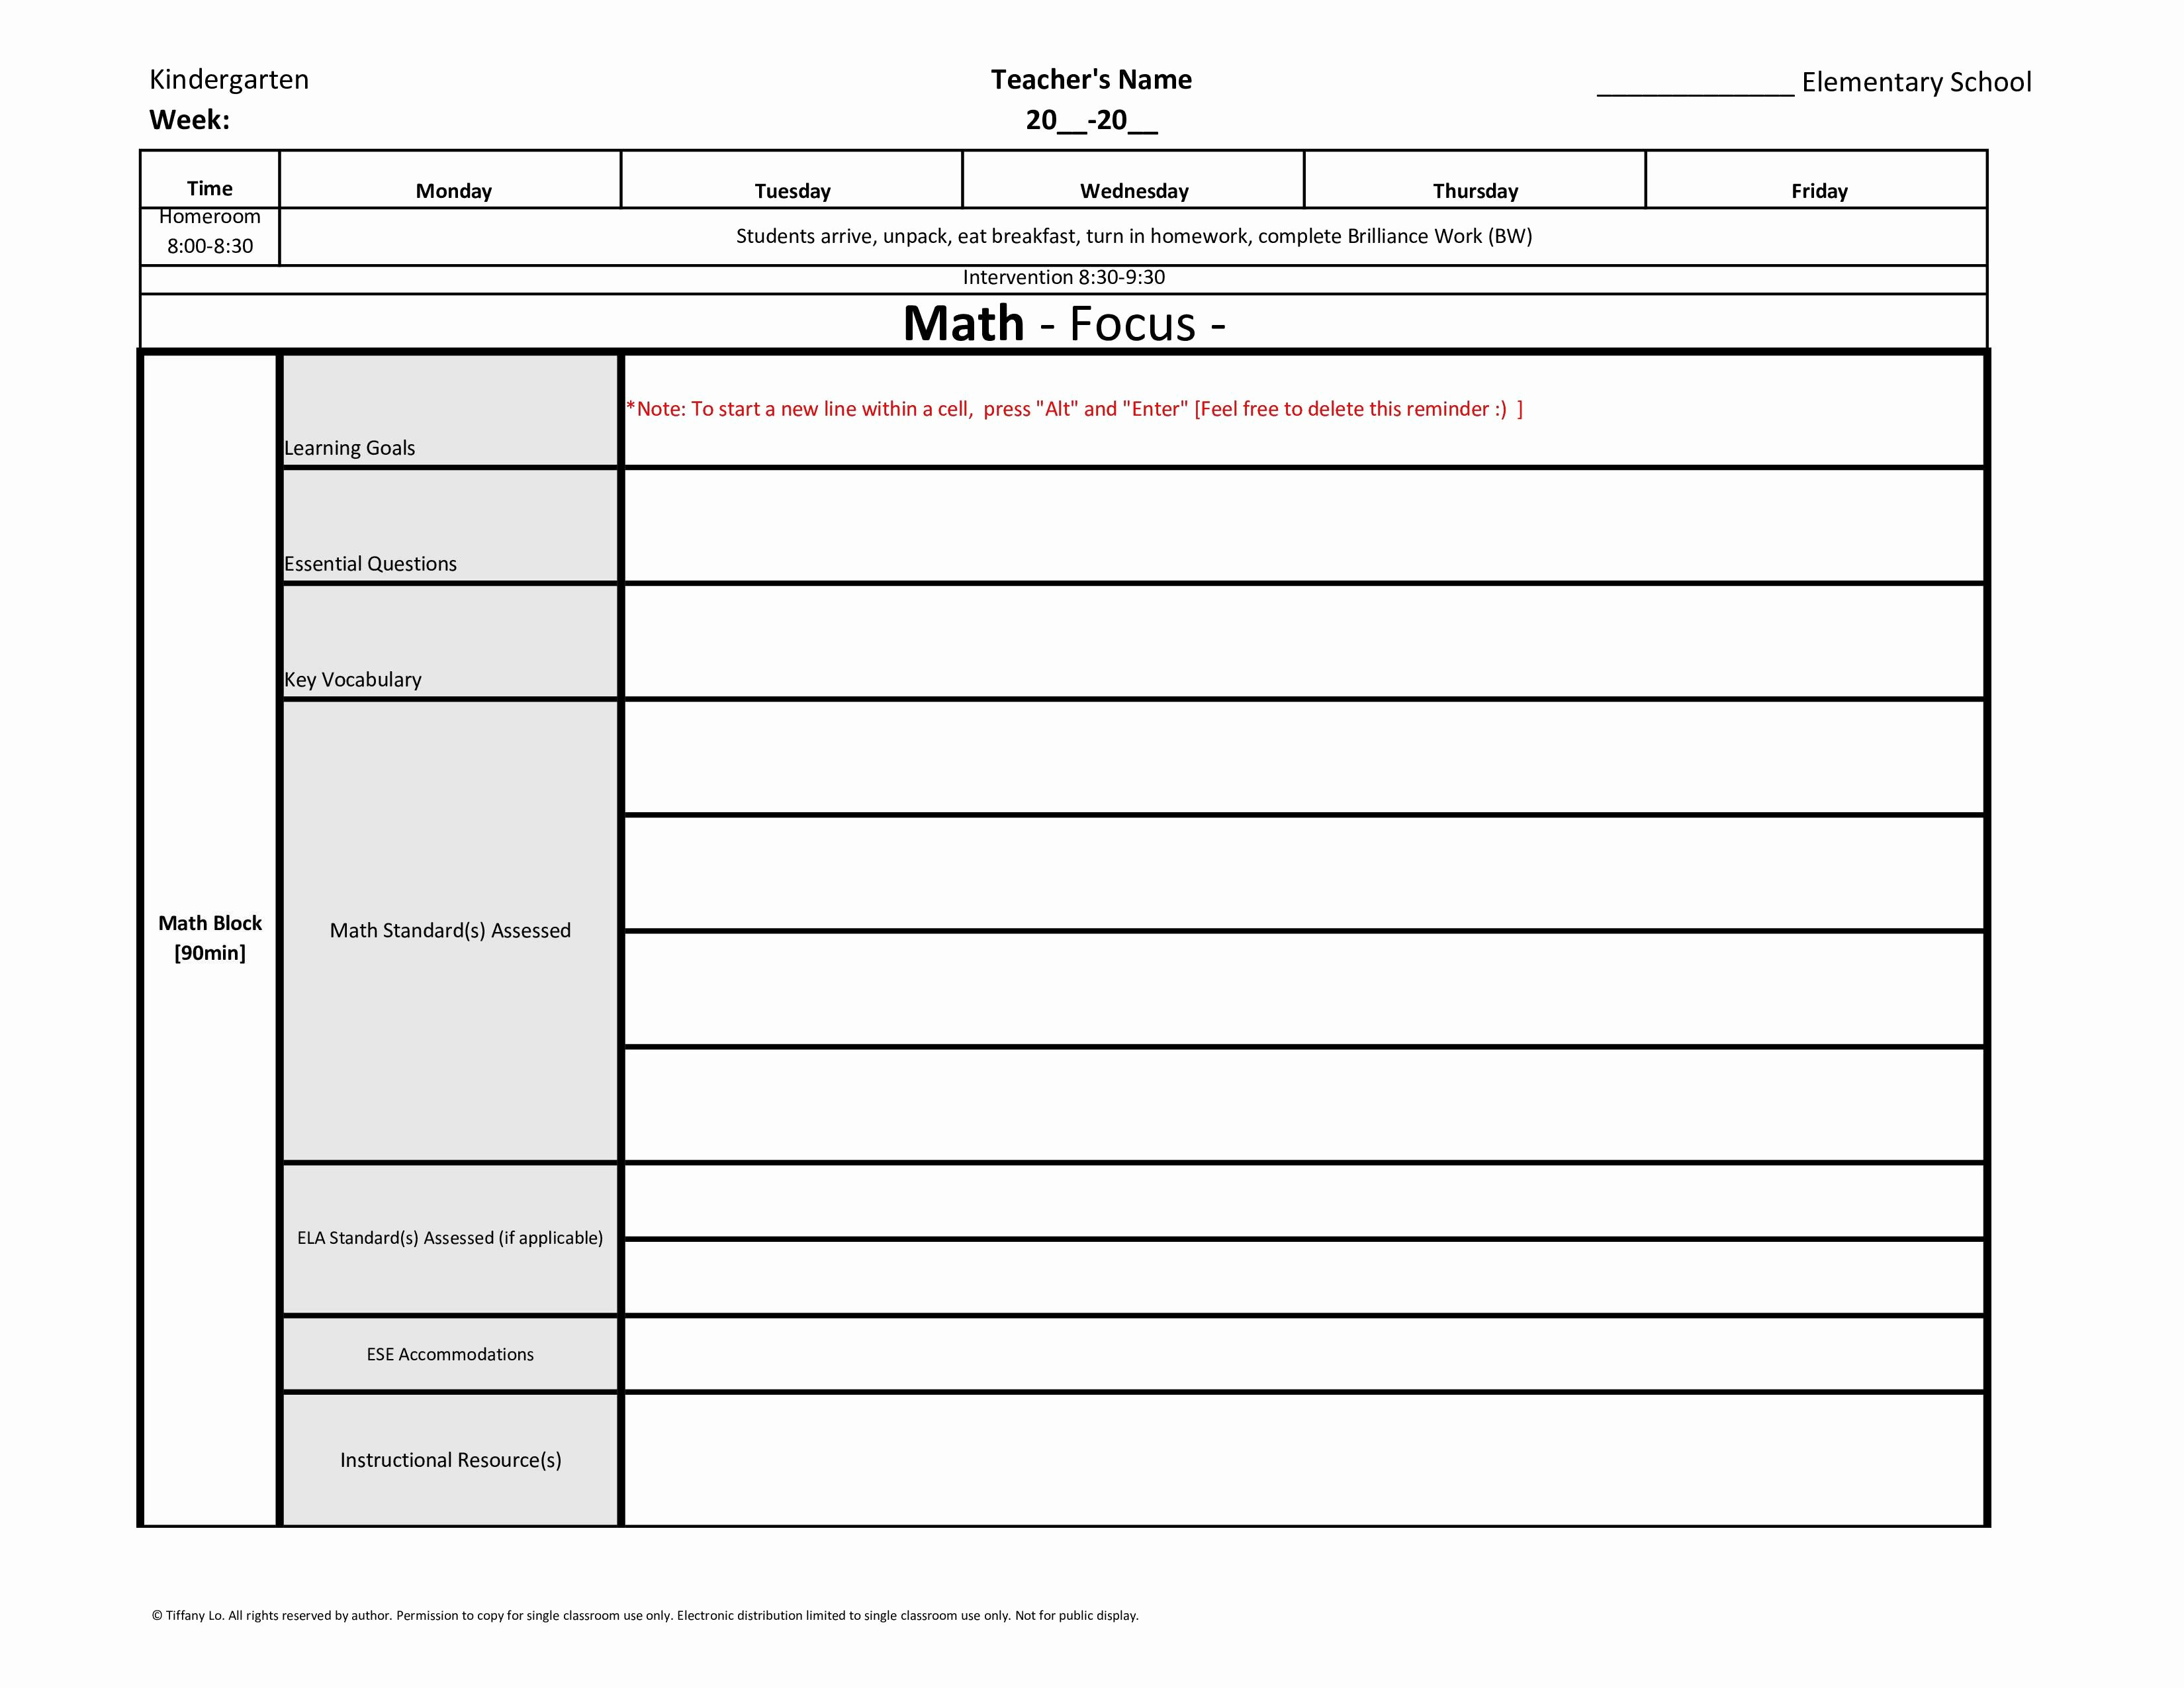 Weekly Lesson Plan Templates Elementary Awesome Kindergarten Weekly Lesson Plan Template W Florida